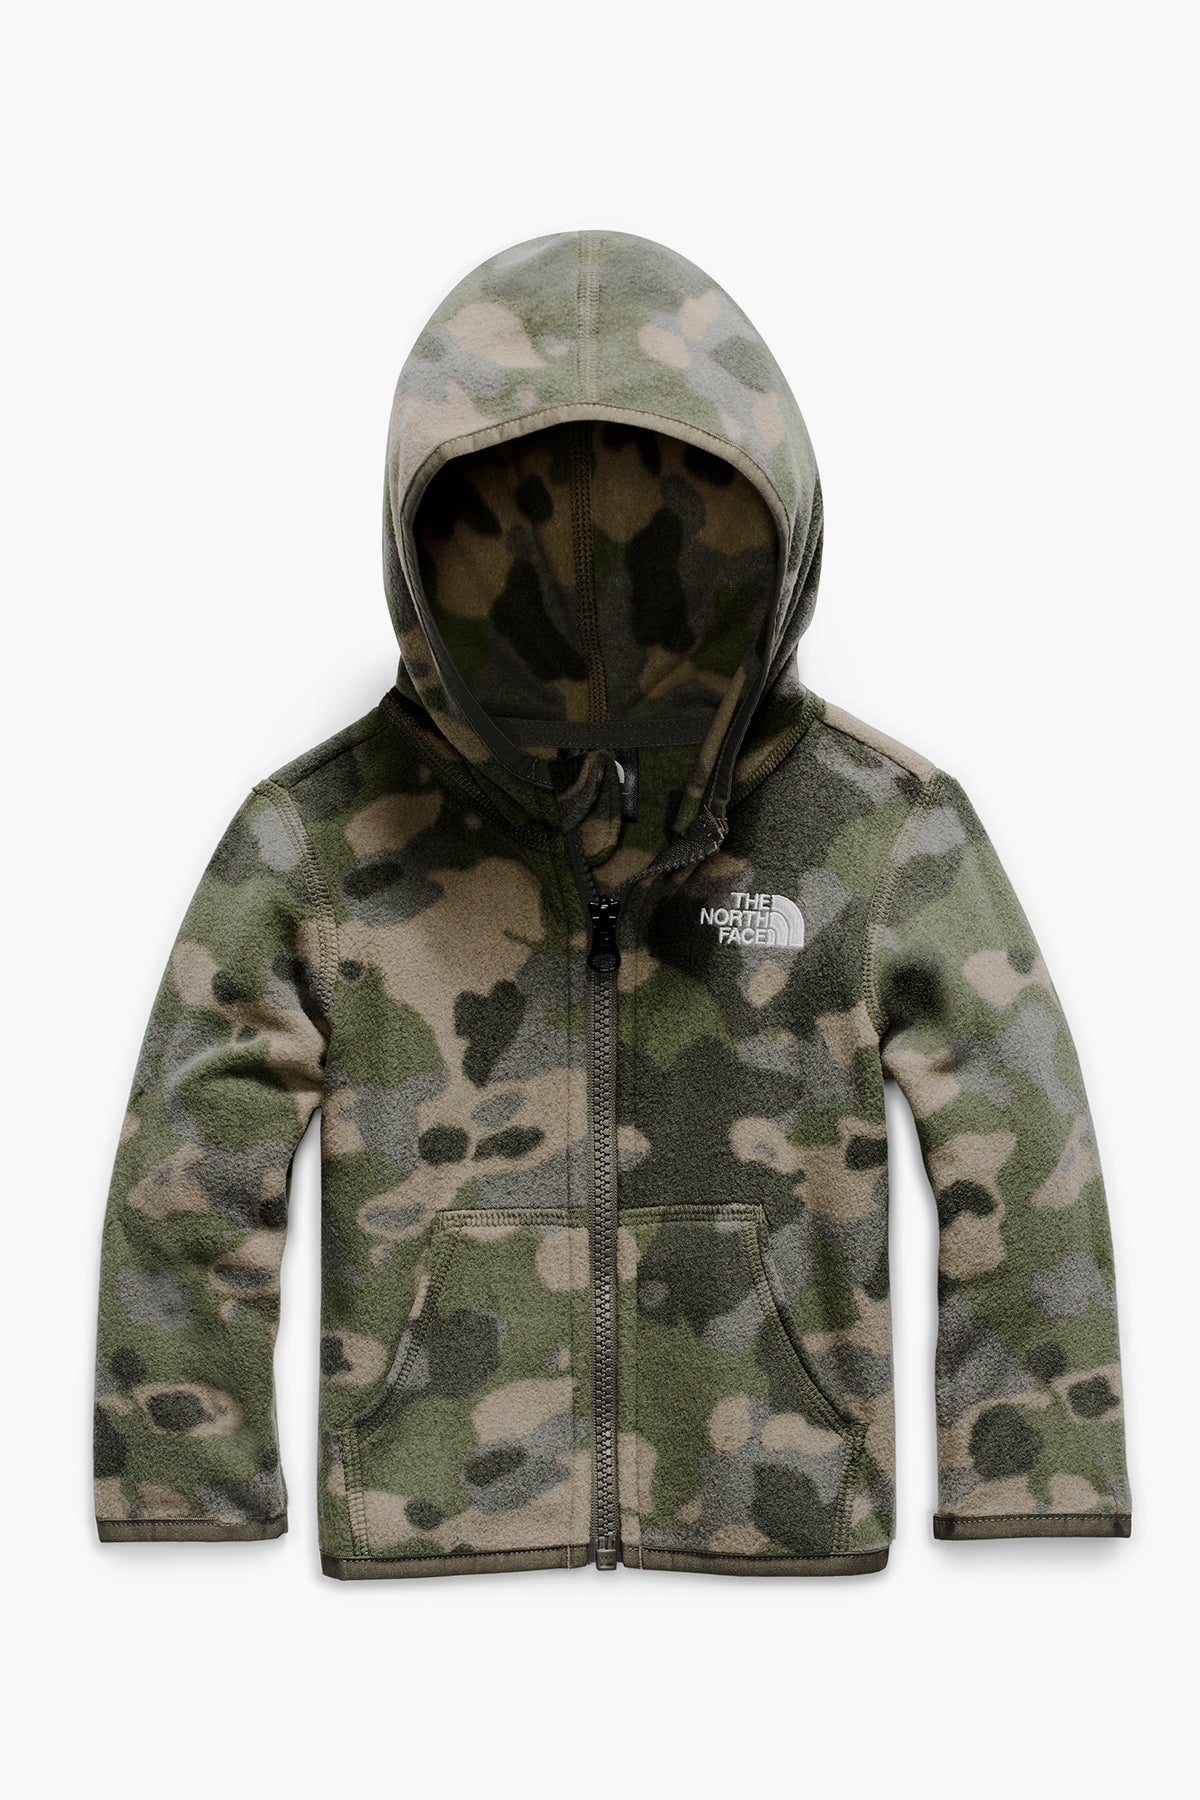 The North Face Toddler Glacier Full Zip Boys Hoodie - Burnt Olive Green (Size 6M left)